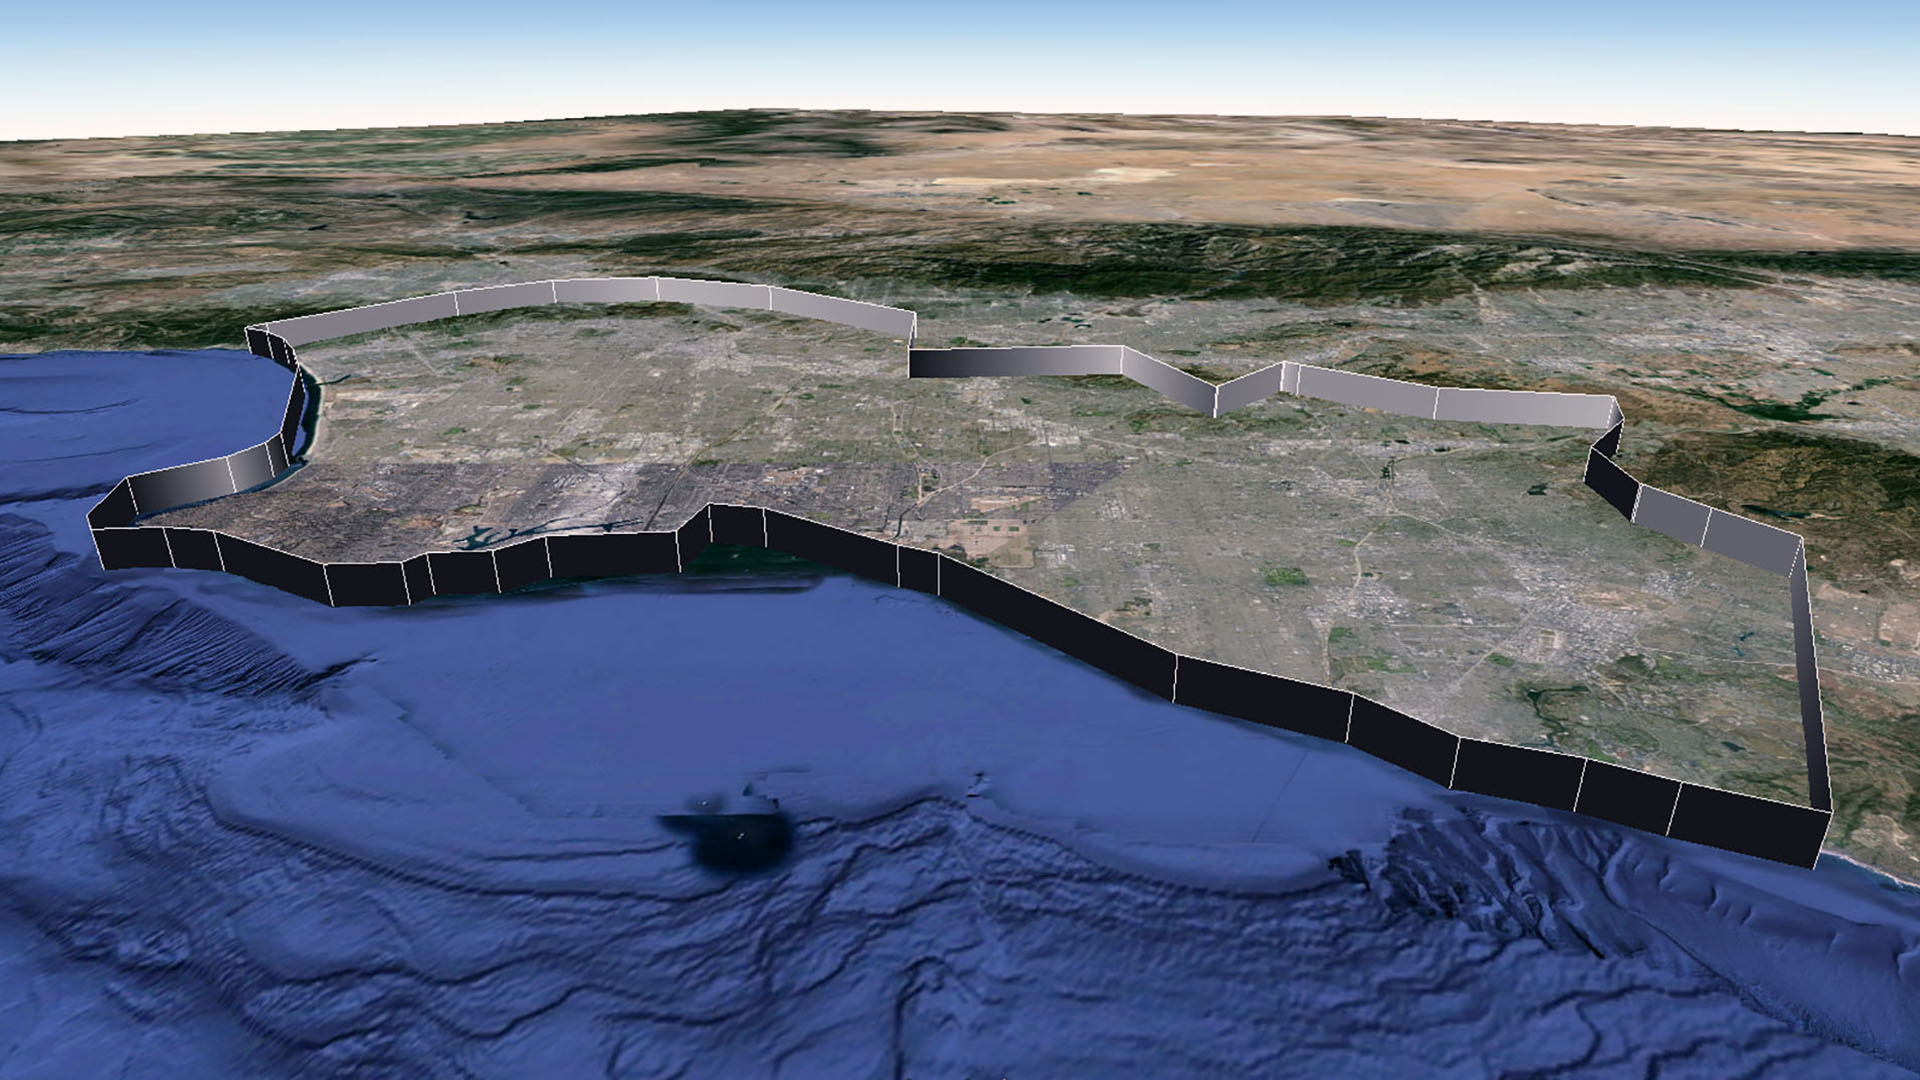 The Frontier of Resolution, here visualized as a wall about 1,500 meters in height, straddles the border between Los Angeles and Orange Counties in Southern California. Judging from Google's initial promotional material release, Los Angeles was among the first four cities to be digitally modeled using the stereophotogrammetry process. As such, the frontier is brazen in its divisions, and can be described with a spartan 49 placemarks (compare to the later completed model of Chicago, which requires 419 placemarks to trace its edge).